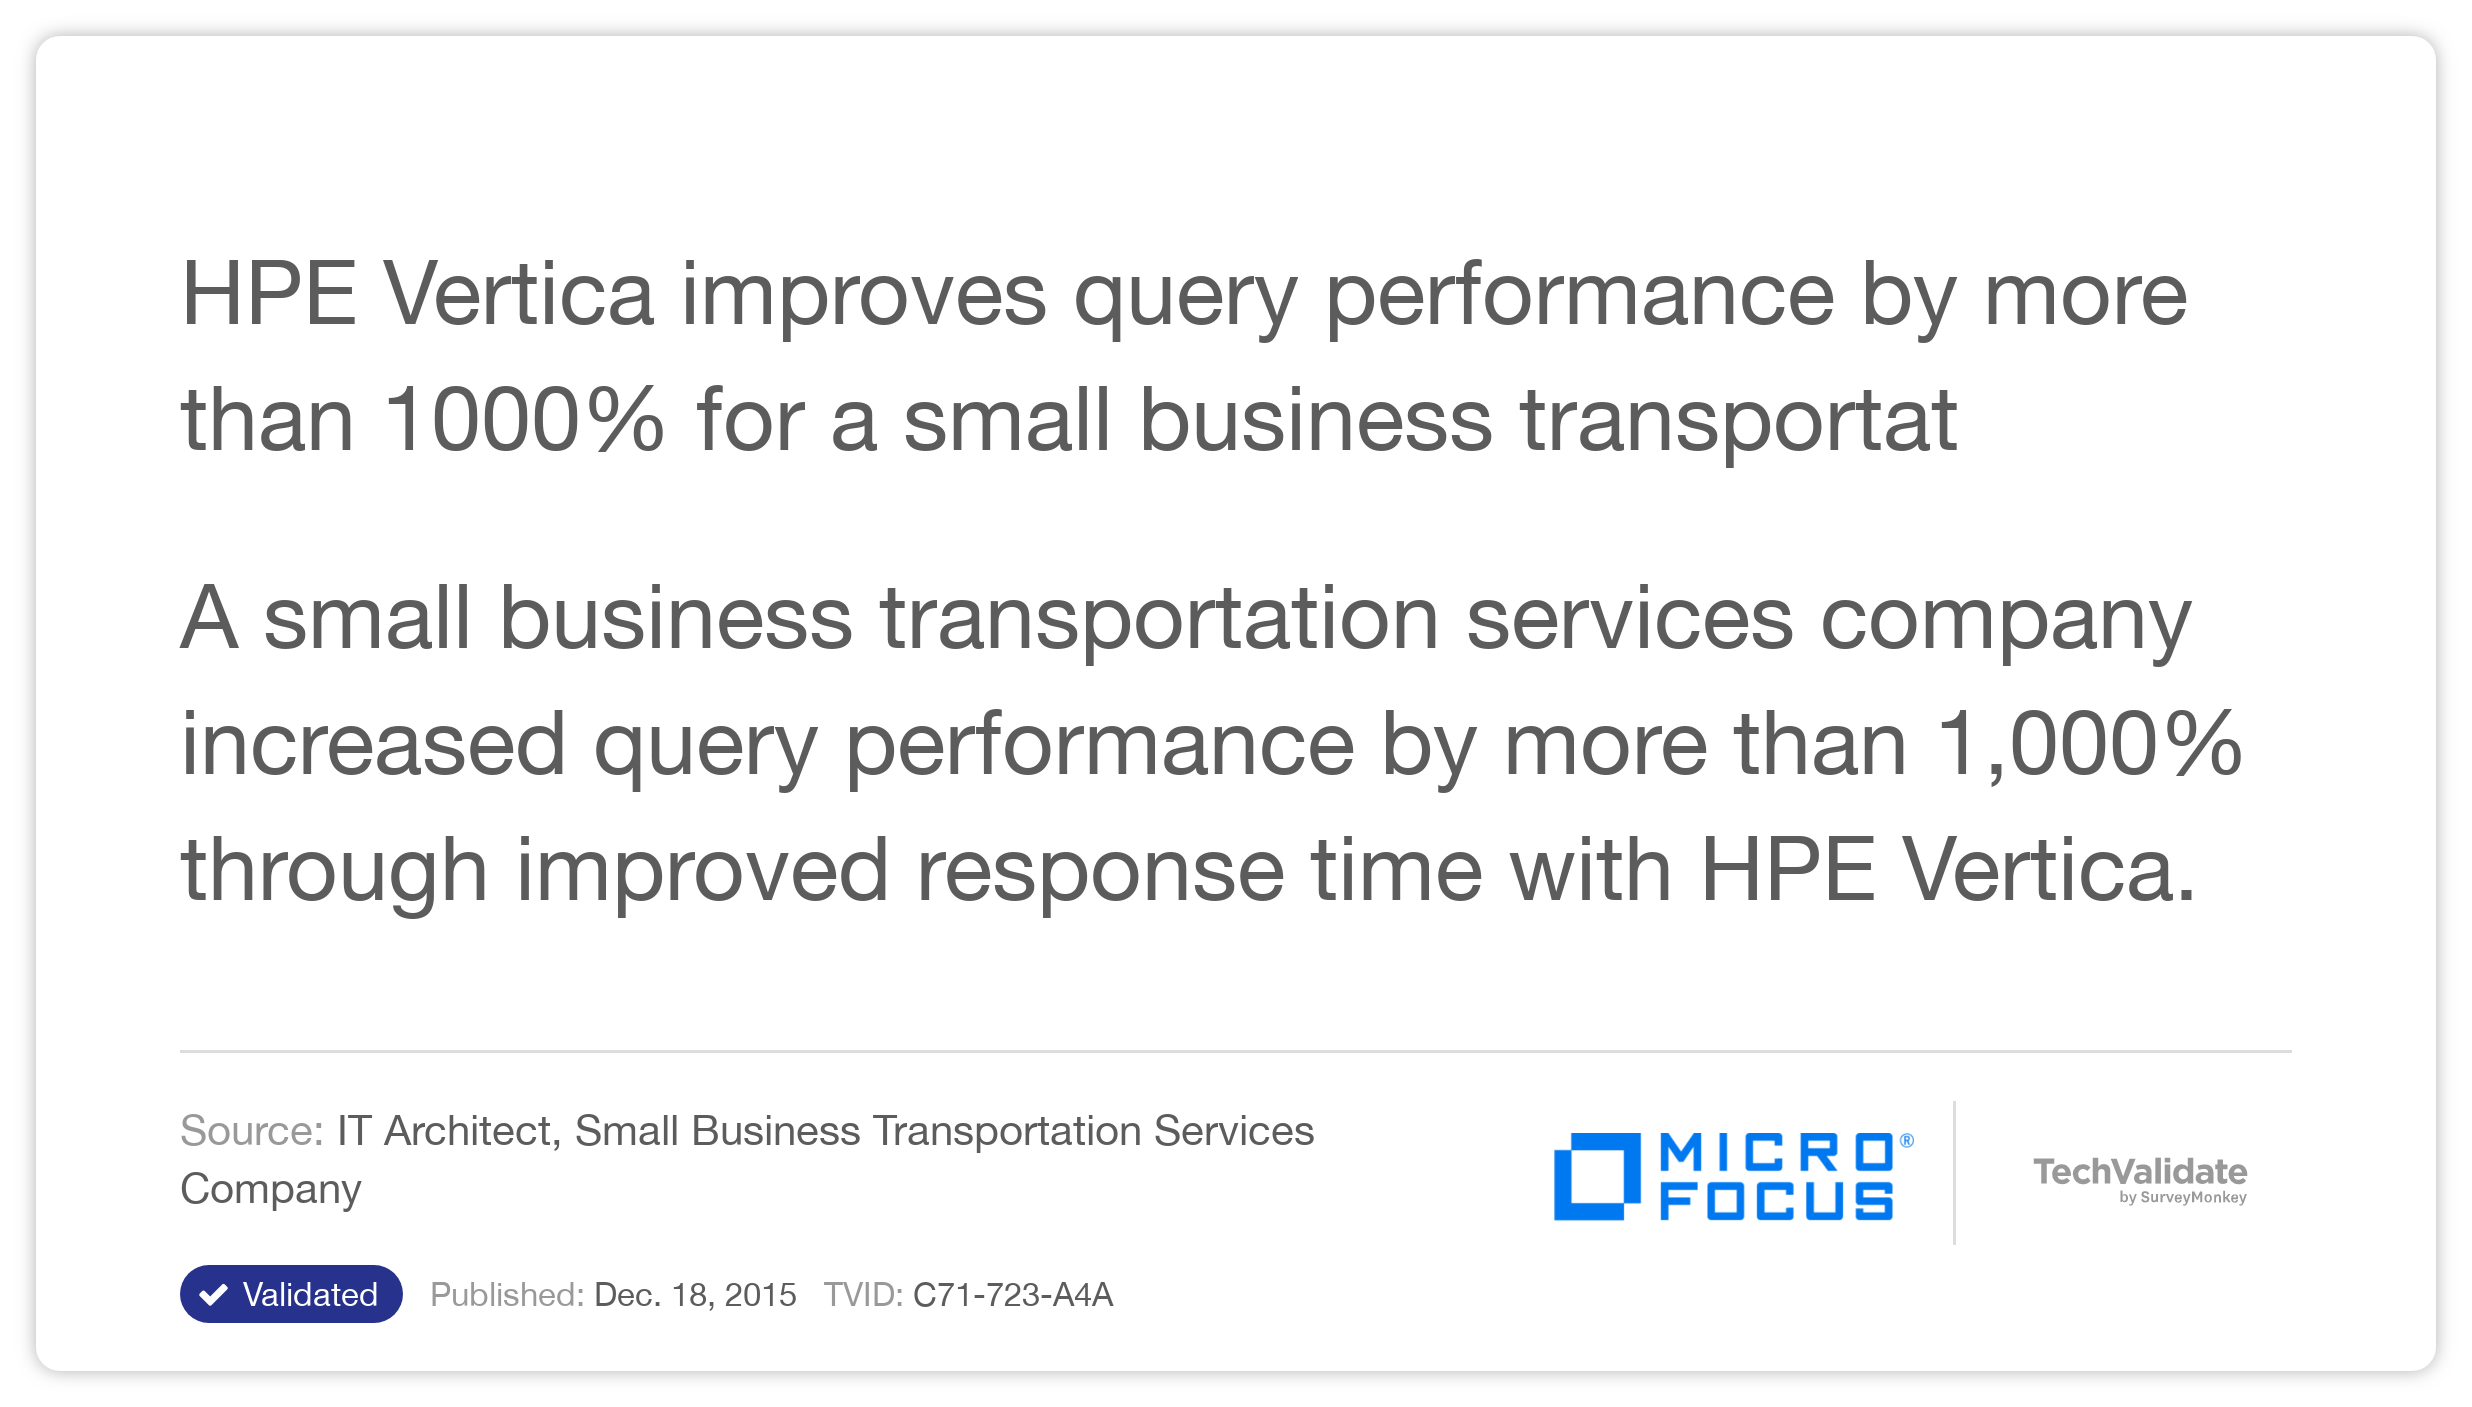 HP Vertica improves query performance by more than 1000% for a small business transportation company